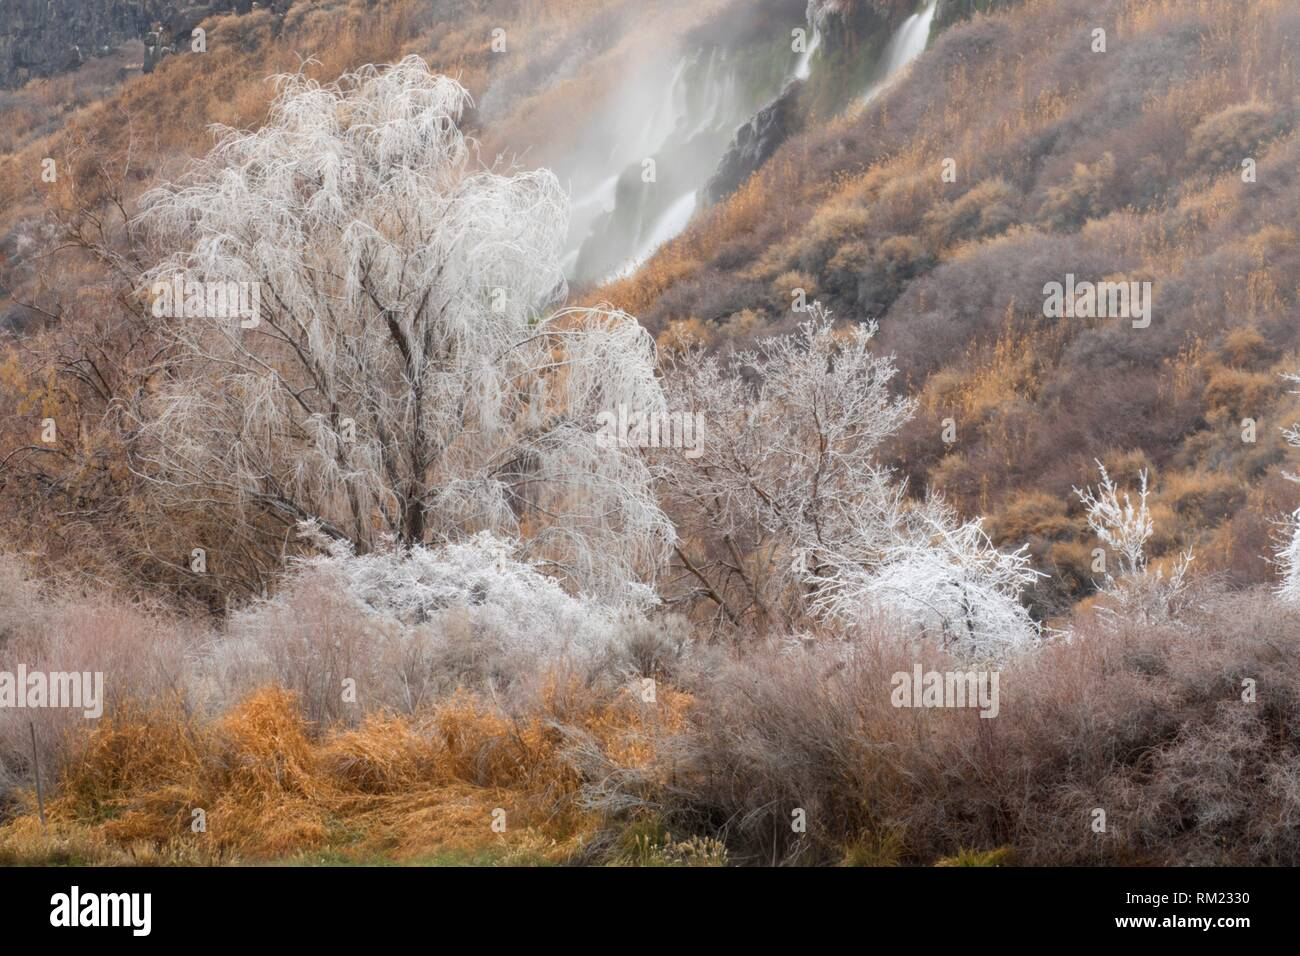 Waterfall spray ice, Thousand Springs State Park-Ritter Island, Idaho. - Stock Image